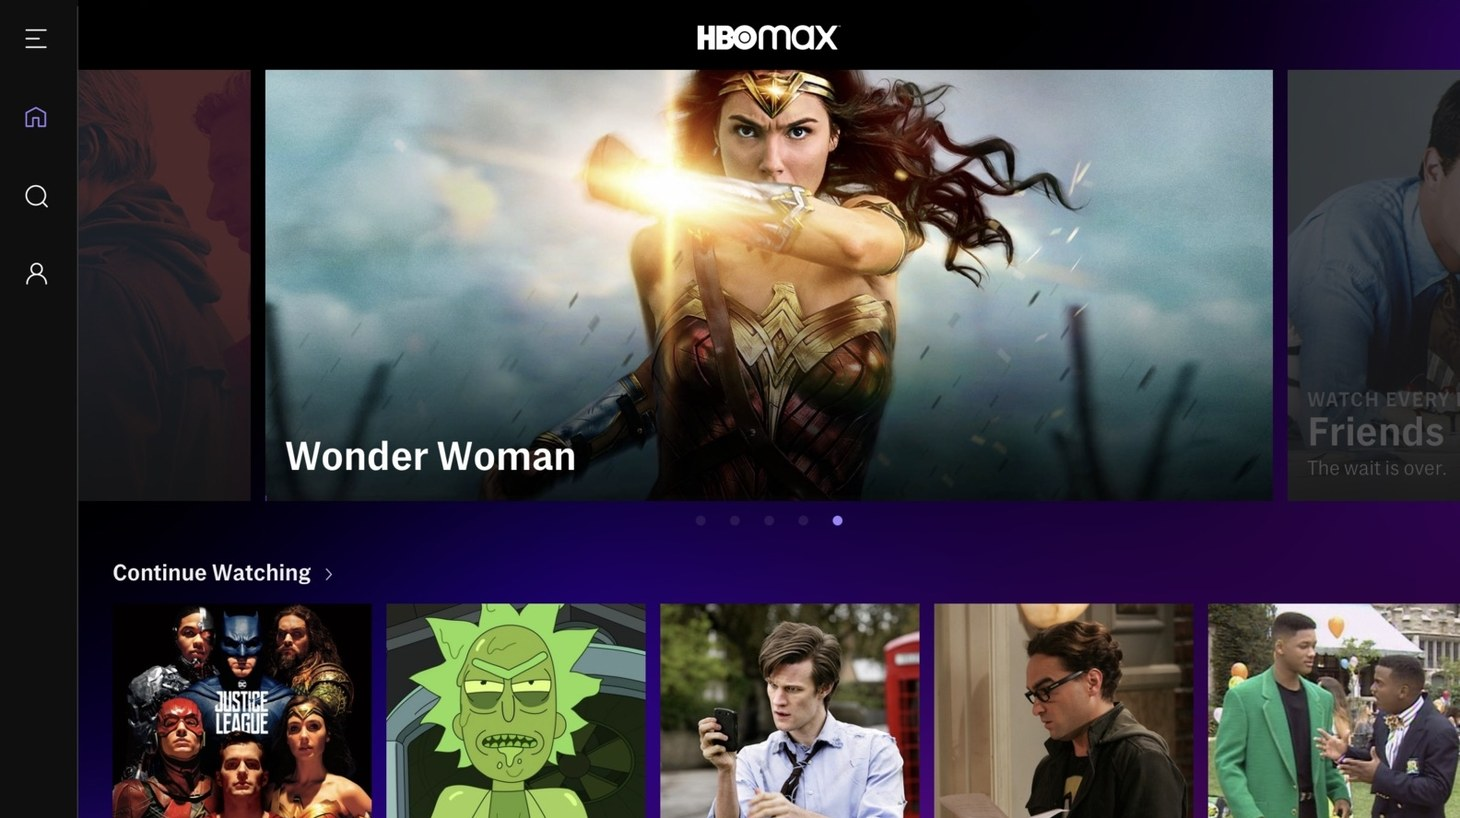 """""""Wonder Woman"""" is currently available on the streaming service HBOMax. The sequel """"Wonder Woman 1984"""" will open in theaters and stream on HBOMax on the same day — December 25, 2020."""